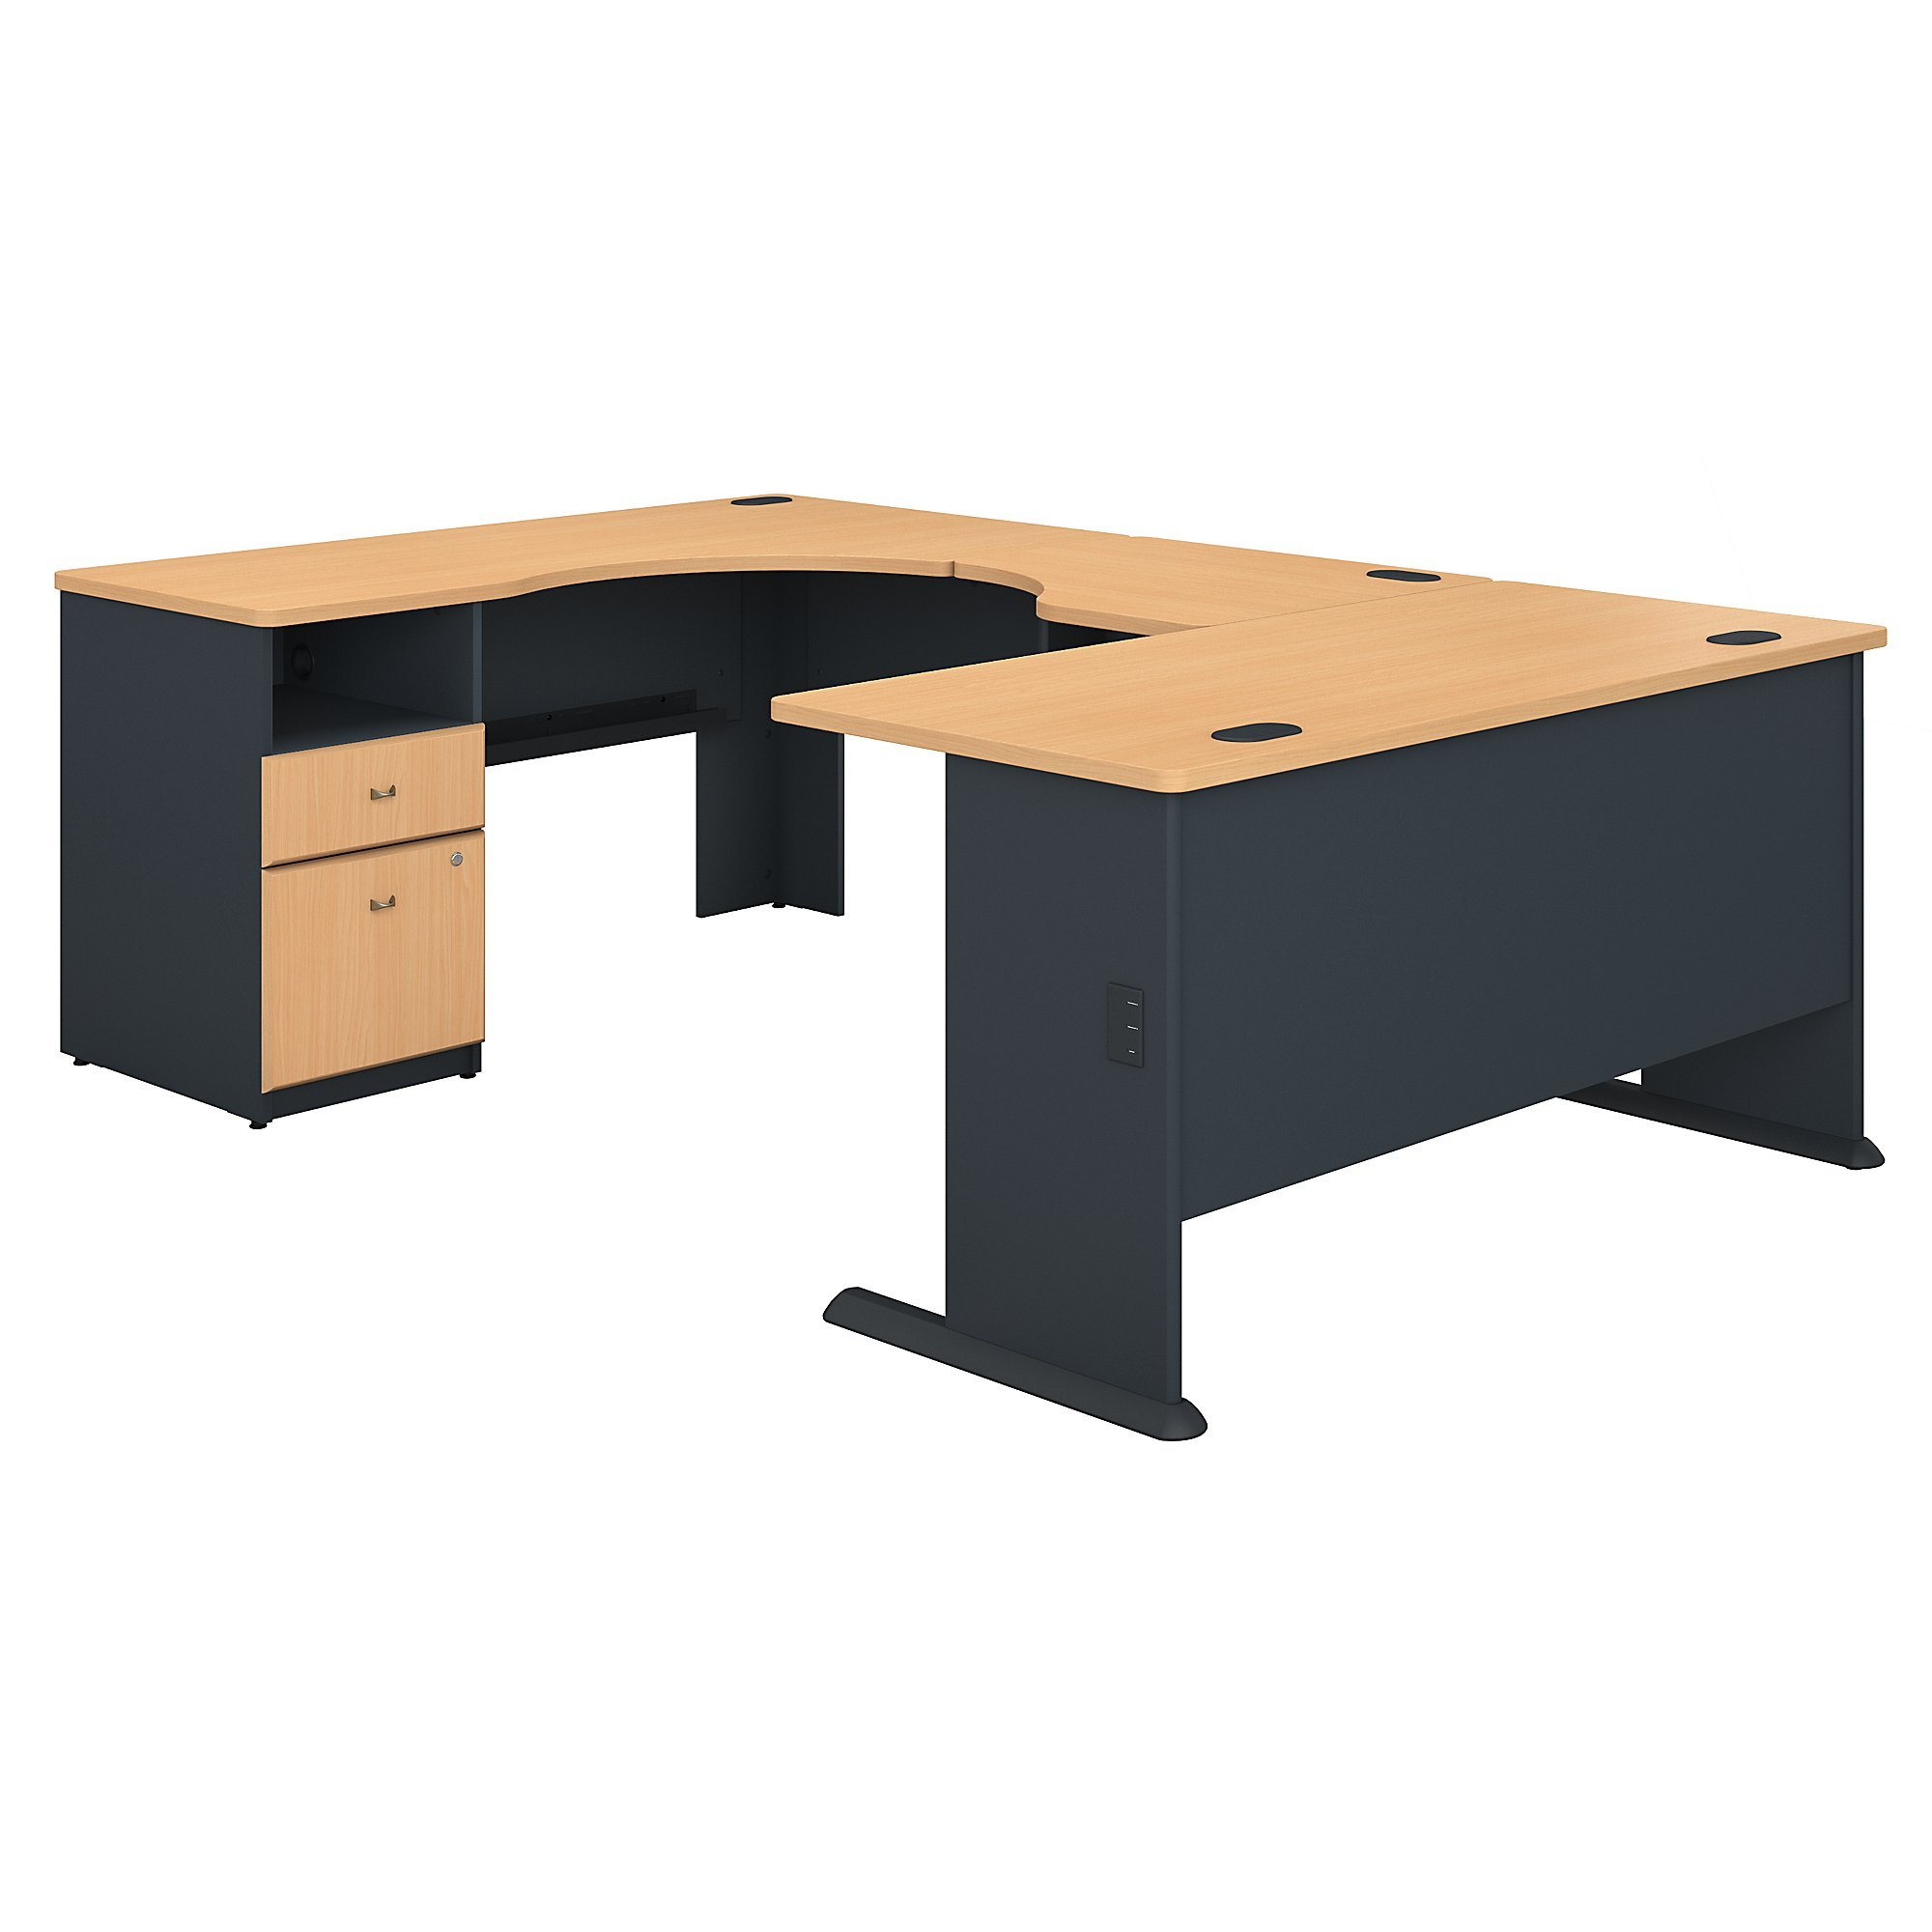 Bush Business Furniture Series A 60W x 93D U Shaped Desk with 2 Drawer Pedestal in Beech and Slate by Bush Business Furniture